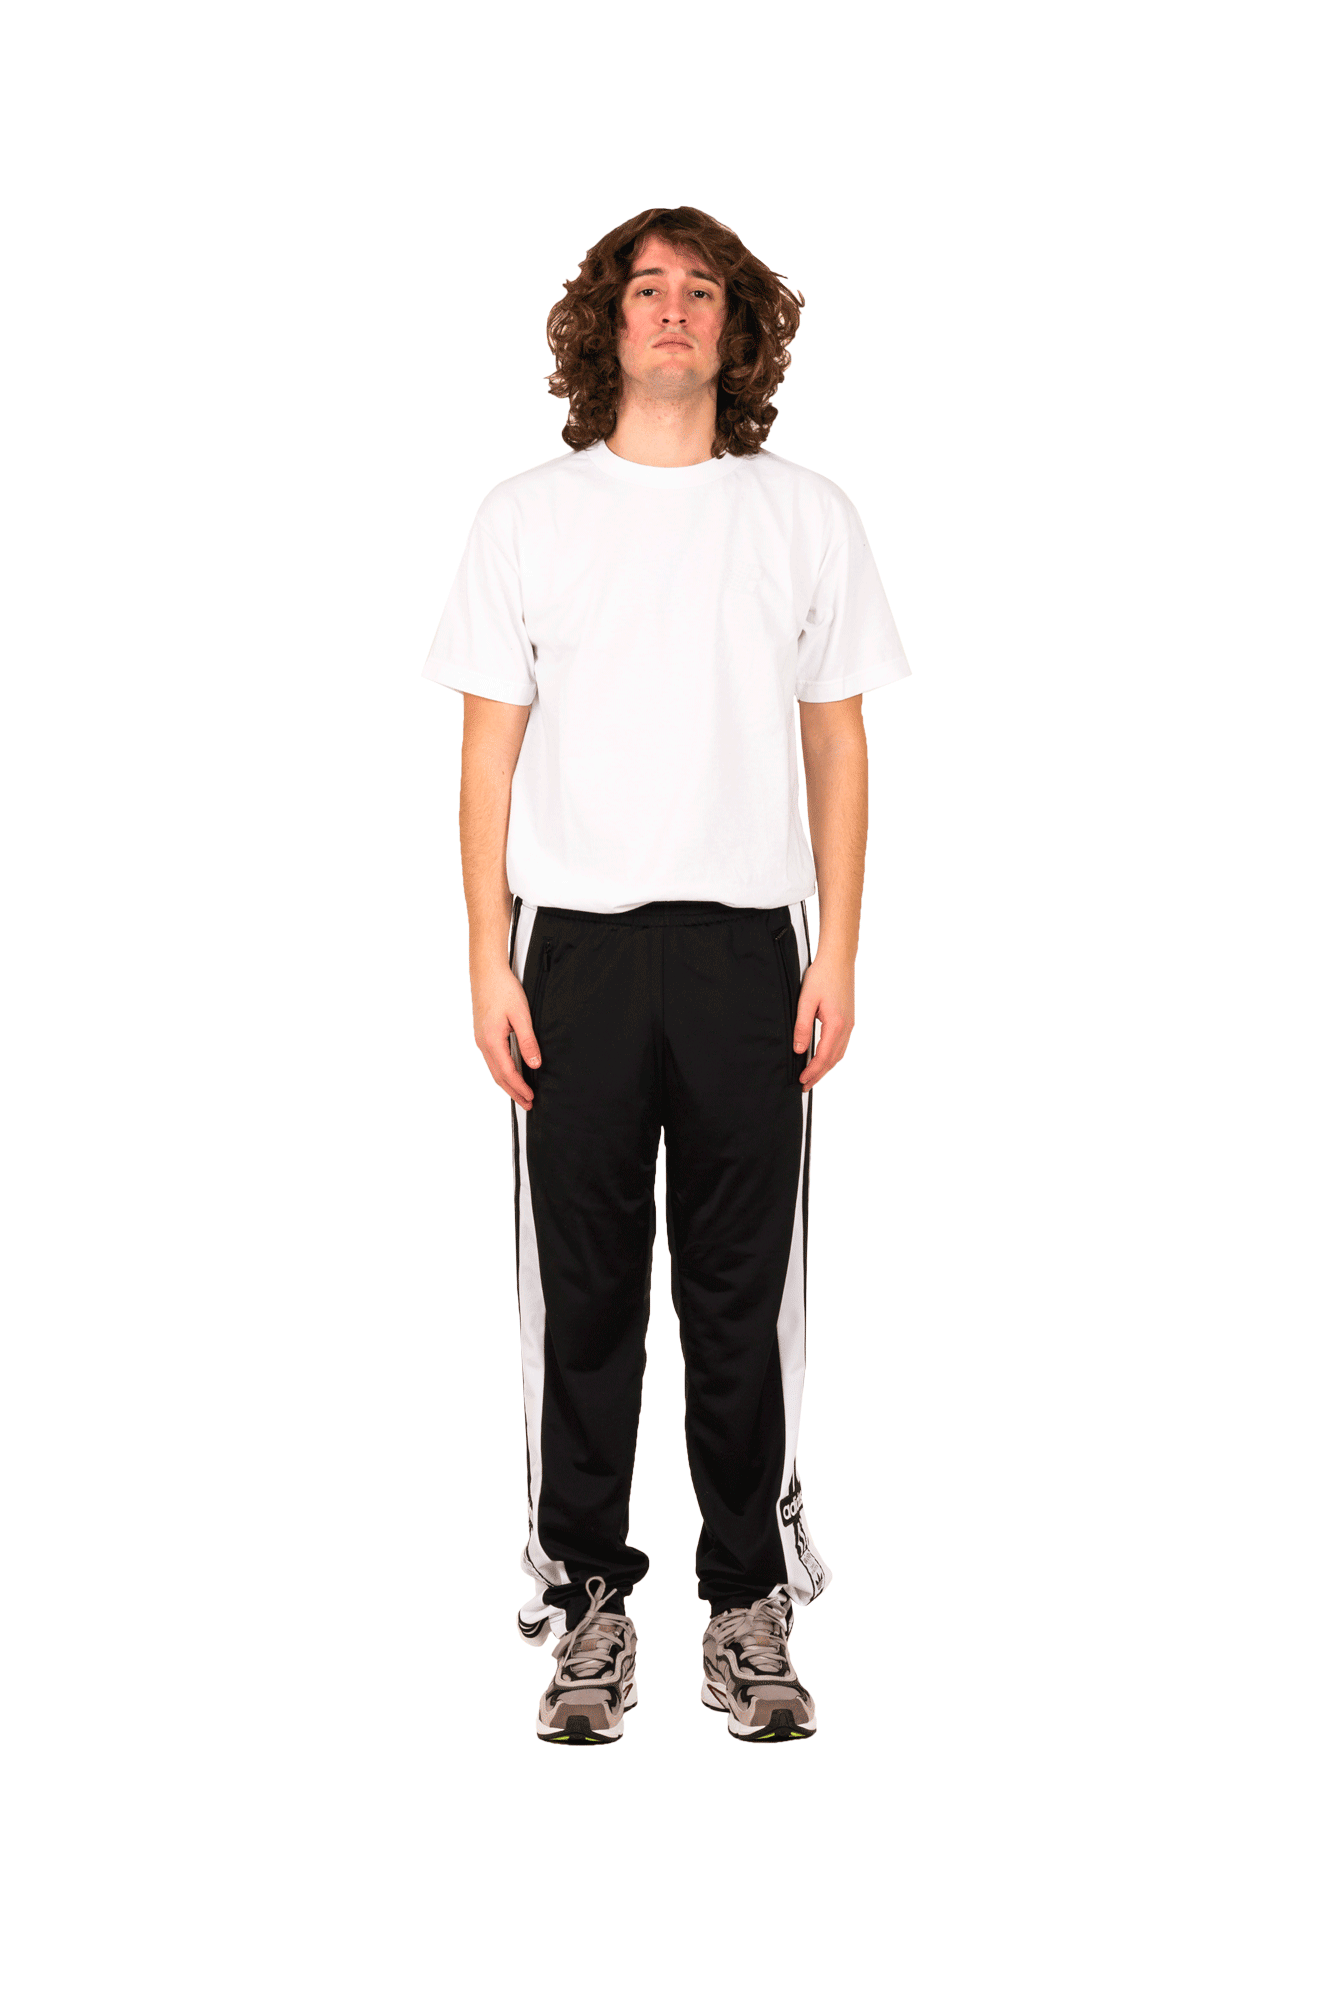 Adidas Originals Pantaloni sportivi Snap Pants Nero DV1593#000#C0010#S - One Block Down